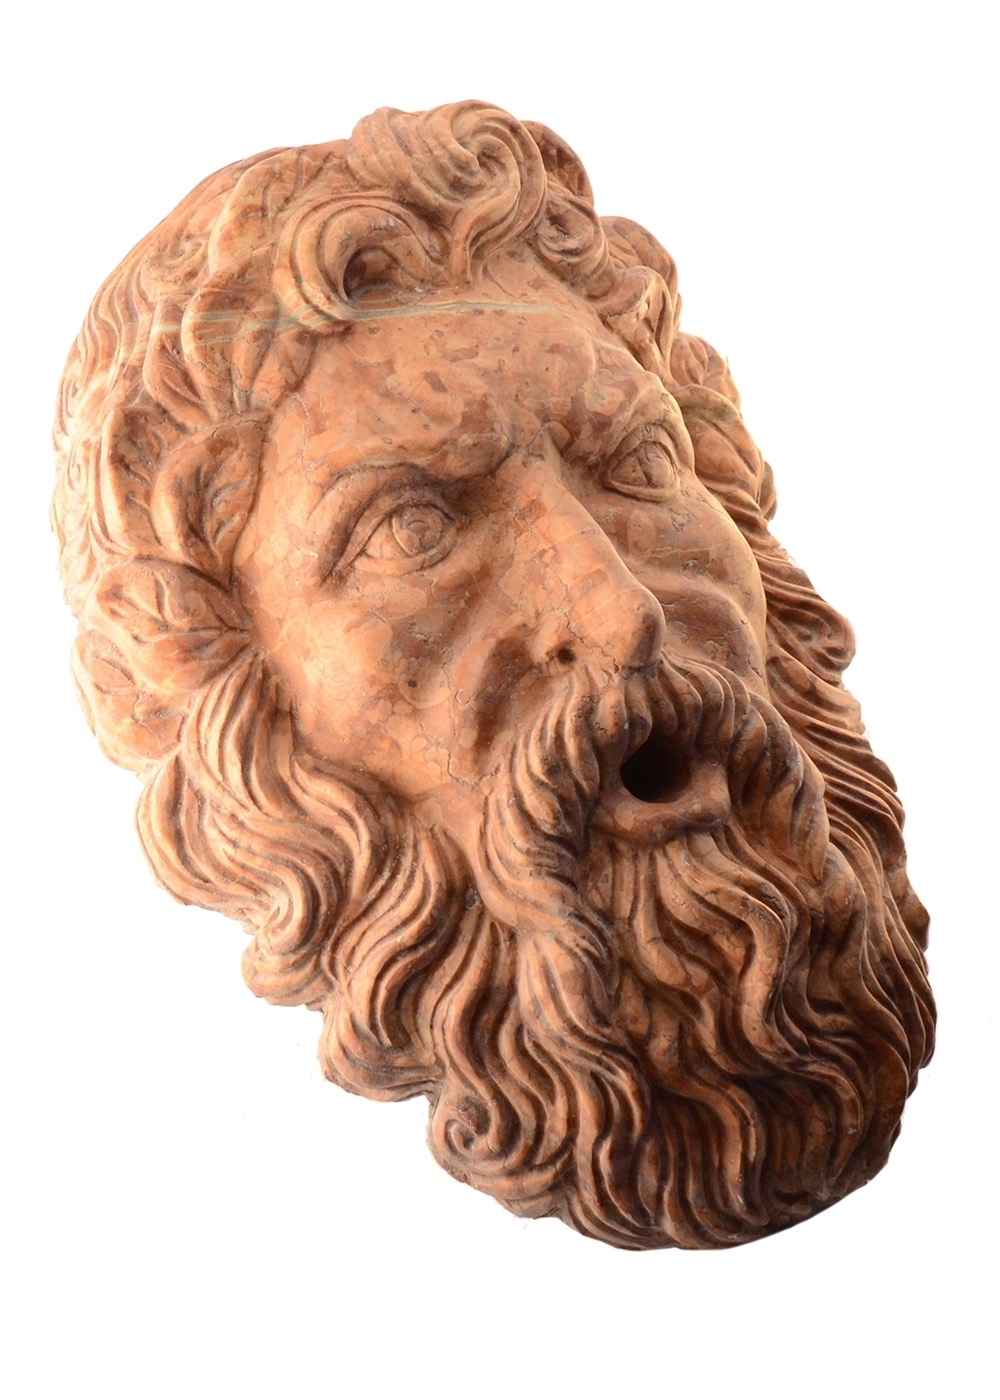 Best price Grotesque Mask Wall Bearded Man Marble Fountain